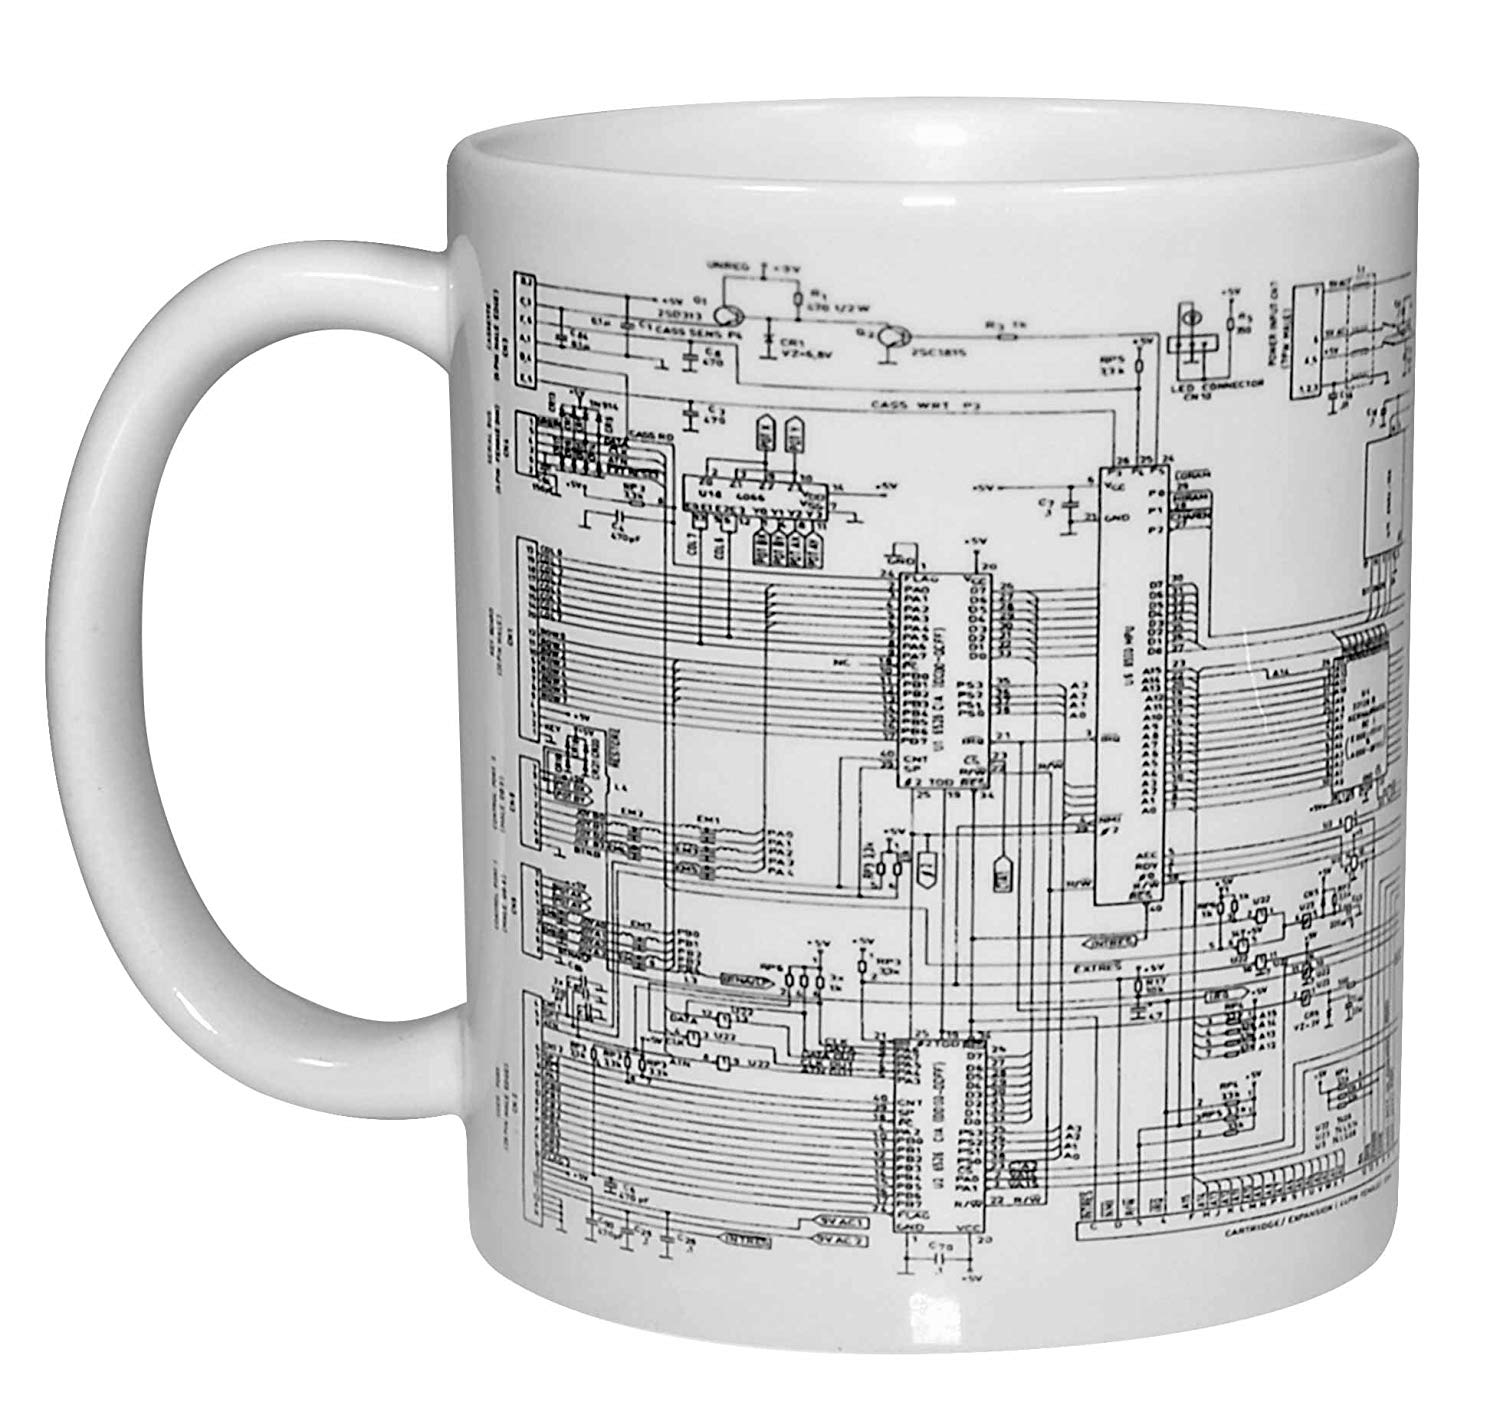 Cheap Timer Circuit Diagram Find Deals On Diagrams And Schematics Get Quotations Image Coffee Or Tea Mug